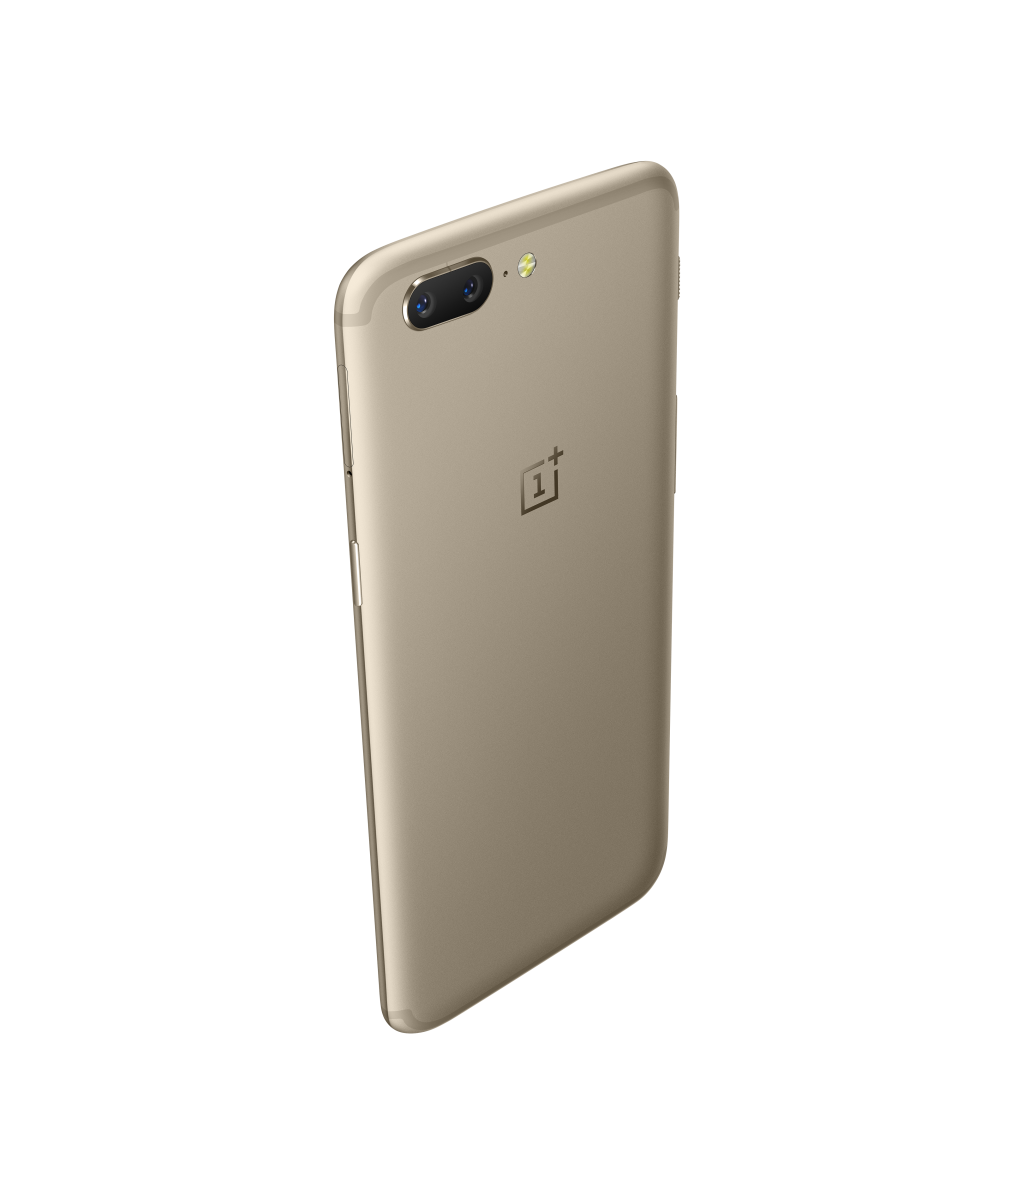 OnePlus 5 Soft Gold variant arrives with same specs